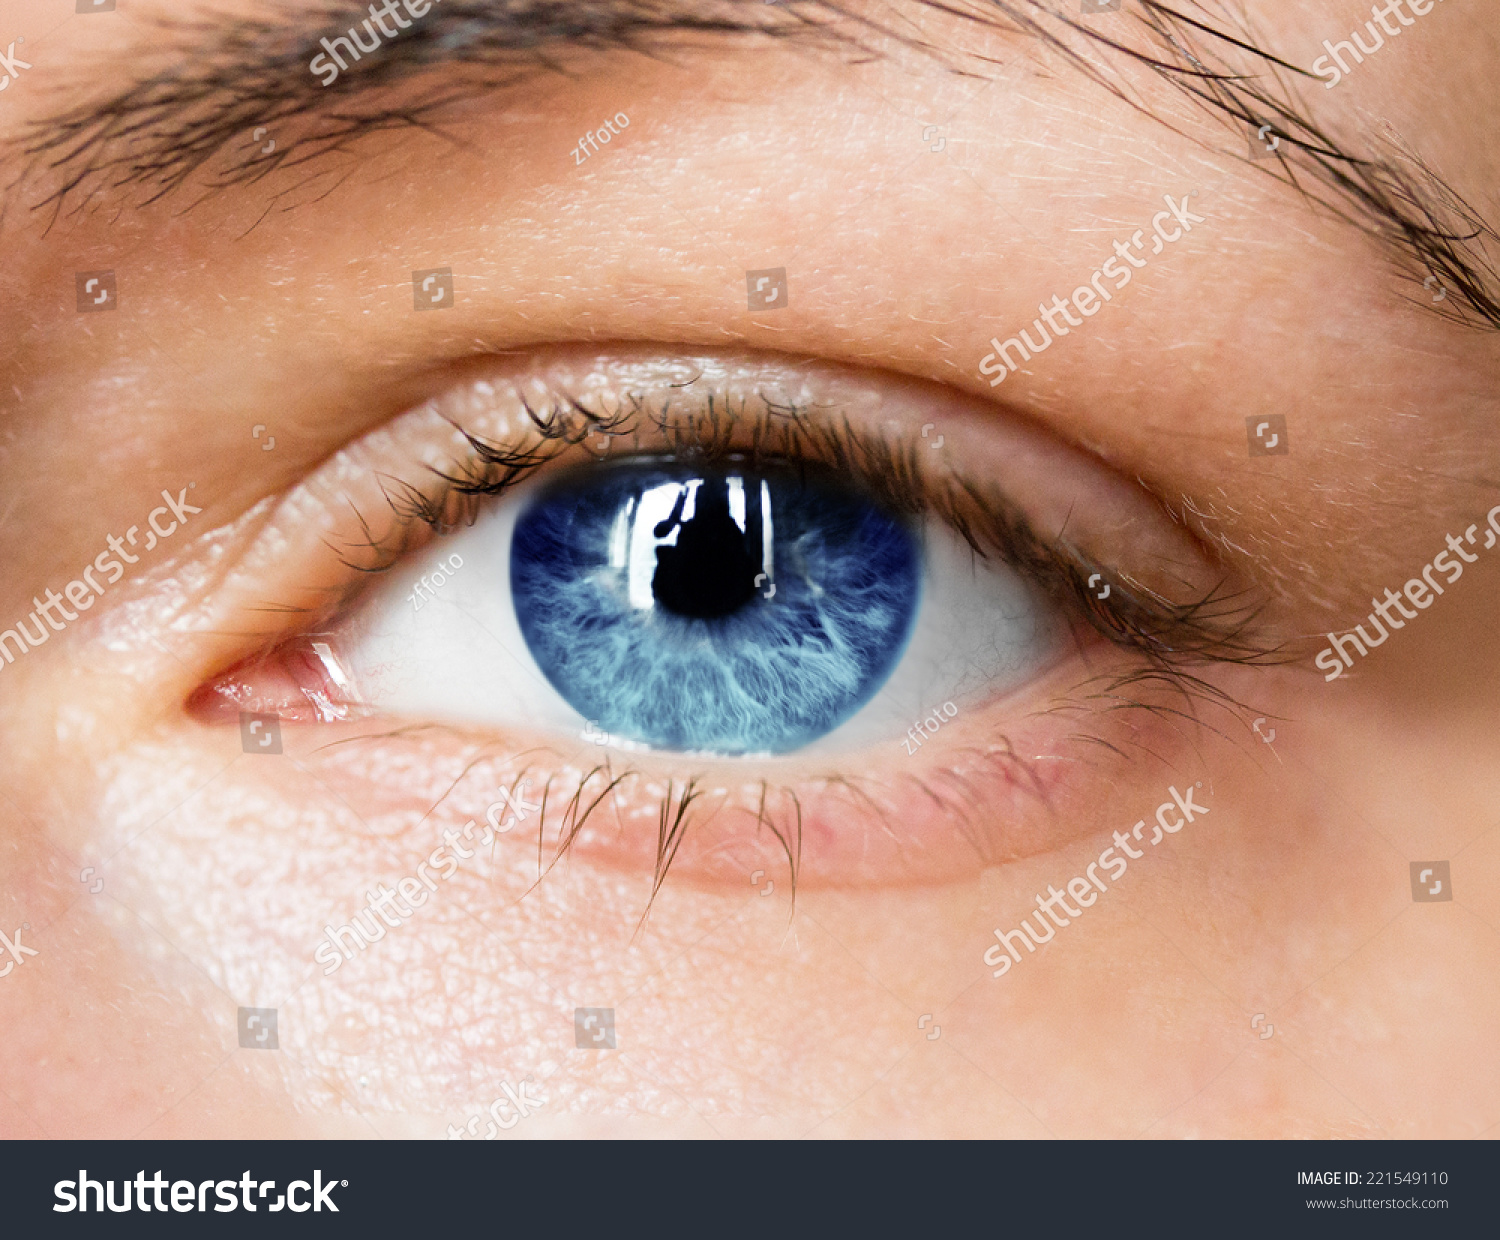 Bright Blue Eye Close Up Stock Photo 221549110 : Shutterstock Bright Blue Eyes Close Up Tumblr